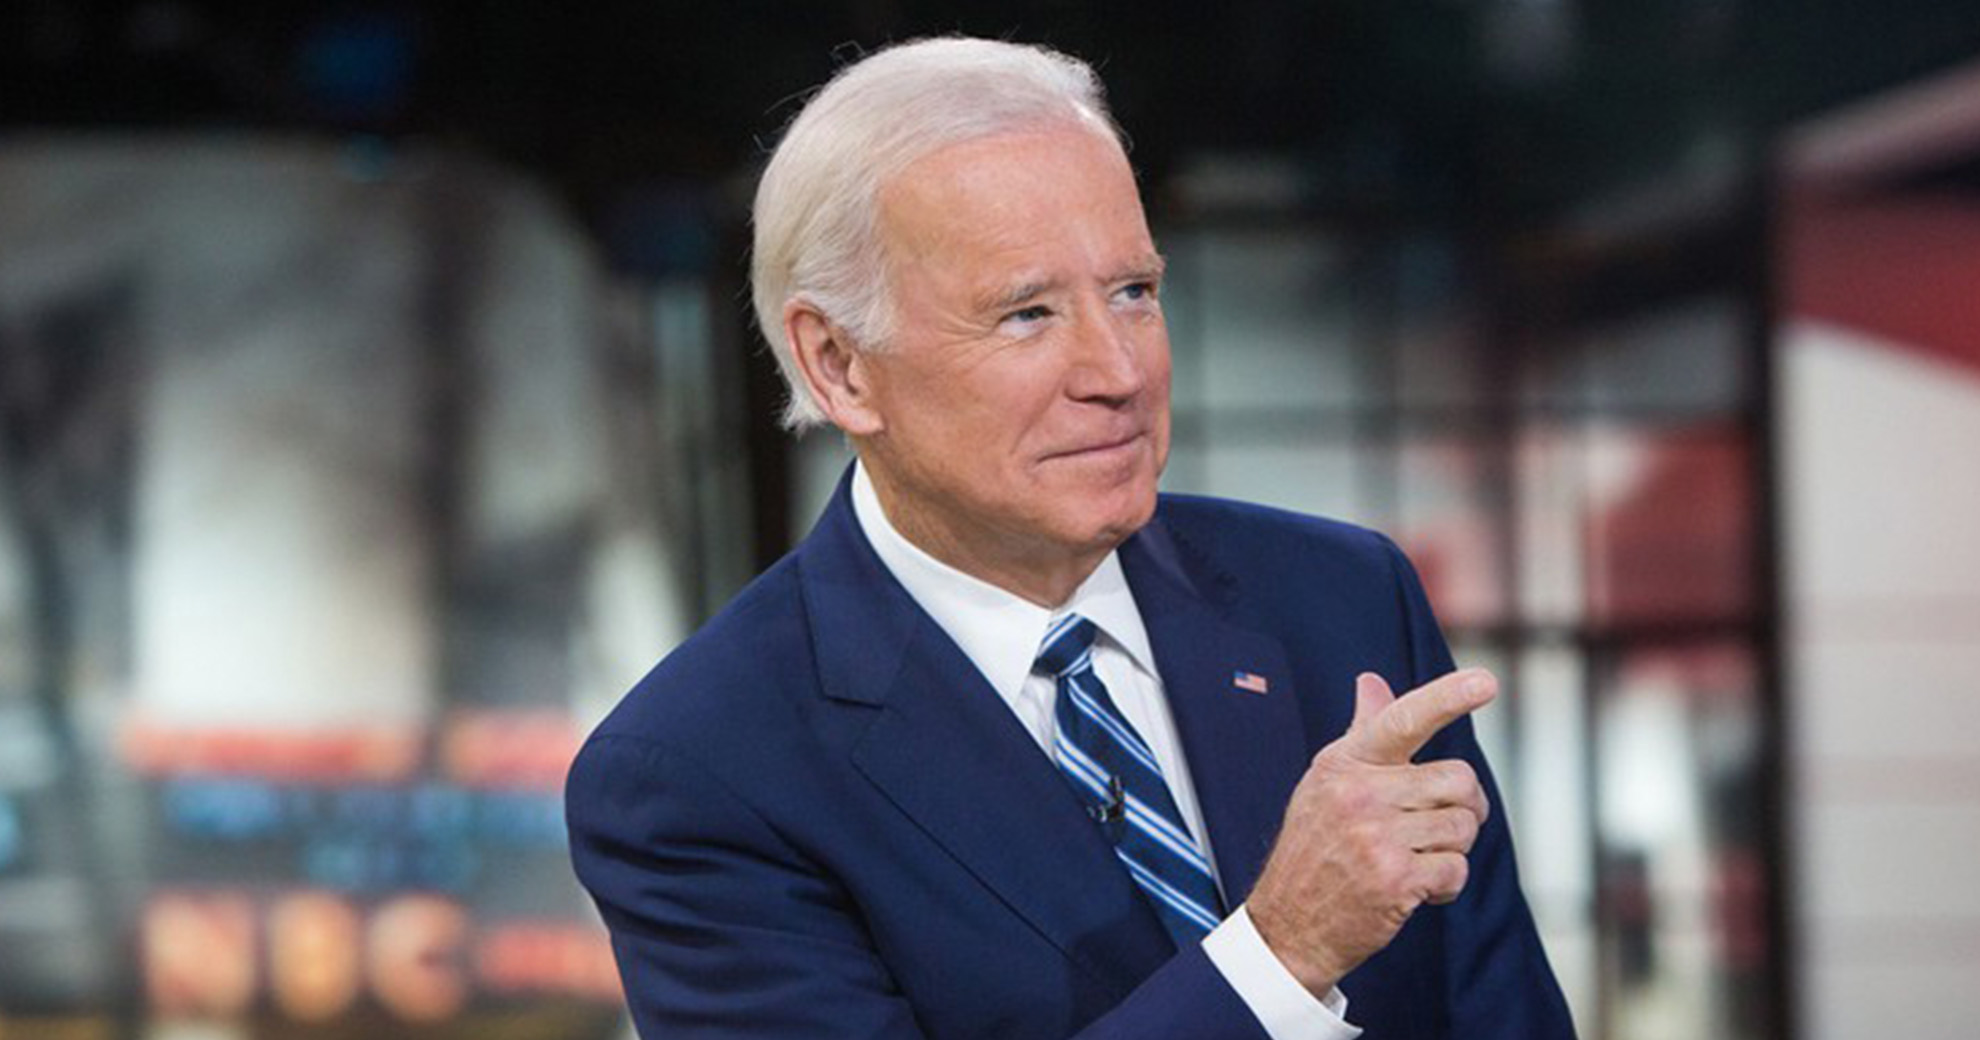 Someone Gave Joe Biden A Meme With Him On It, And He Responded As Only He Would